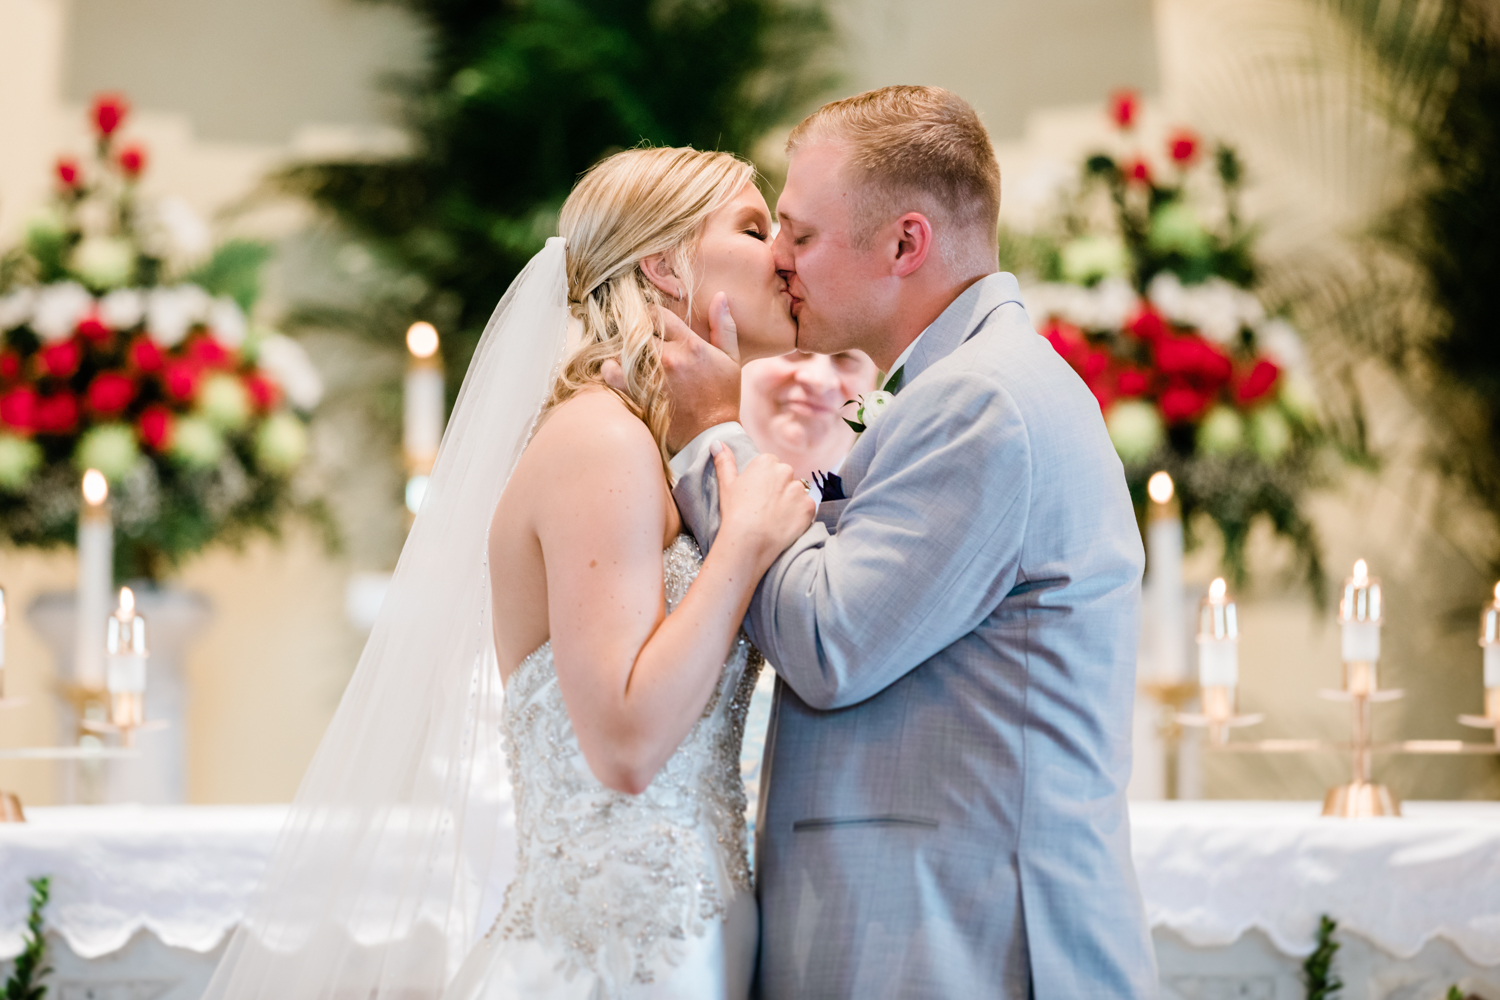 bride and groom share their first kiss at wedding ceremony in Westminster, Maryland